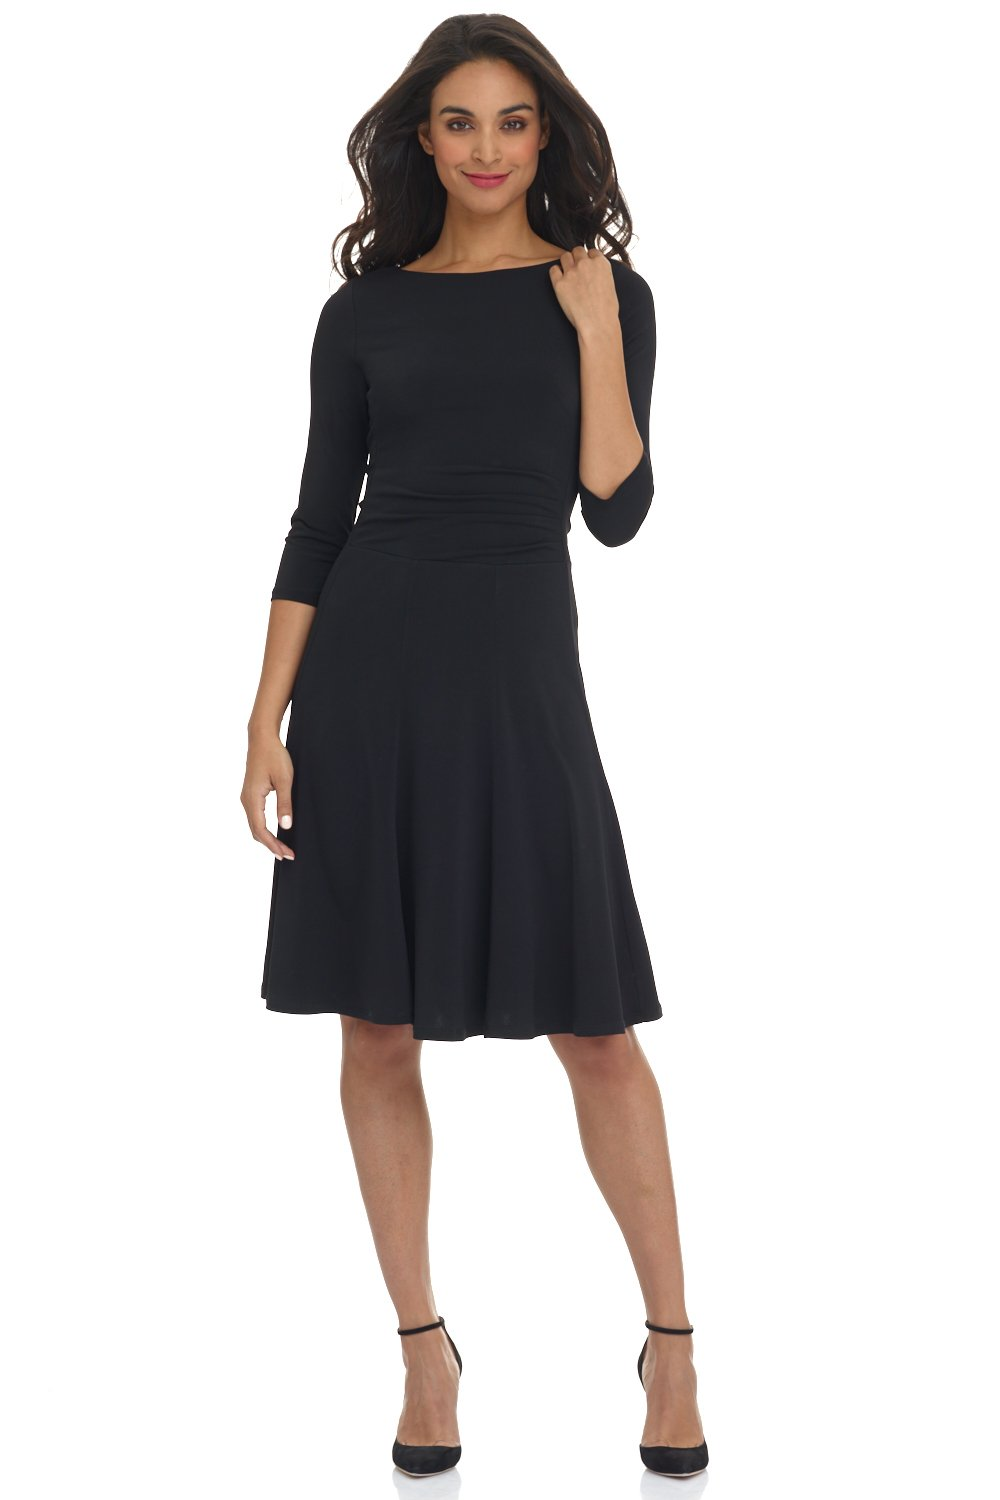 Rekucci Women's Flippy Fit N' Flare Dress with 3/4 Sleeves (6,Black)